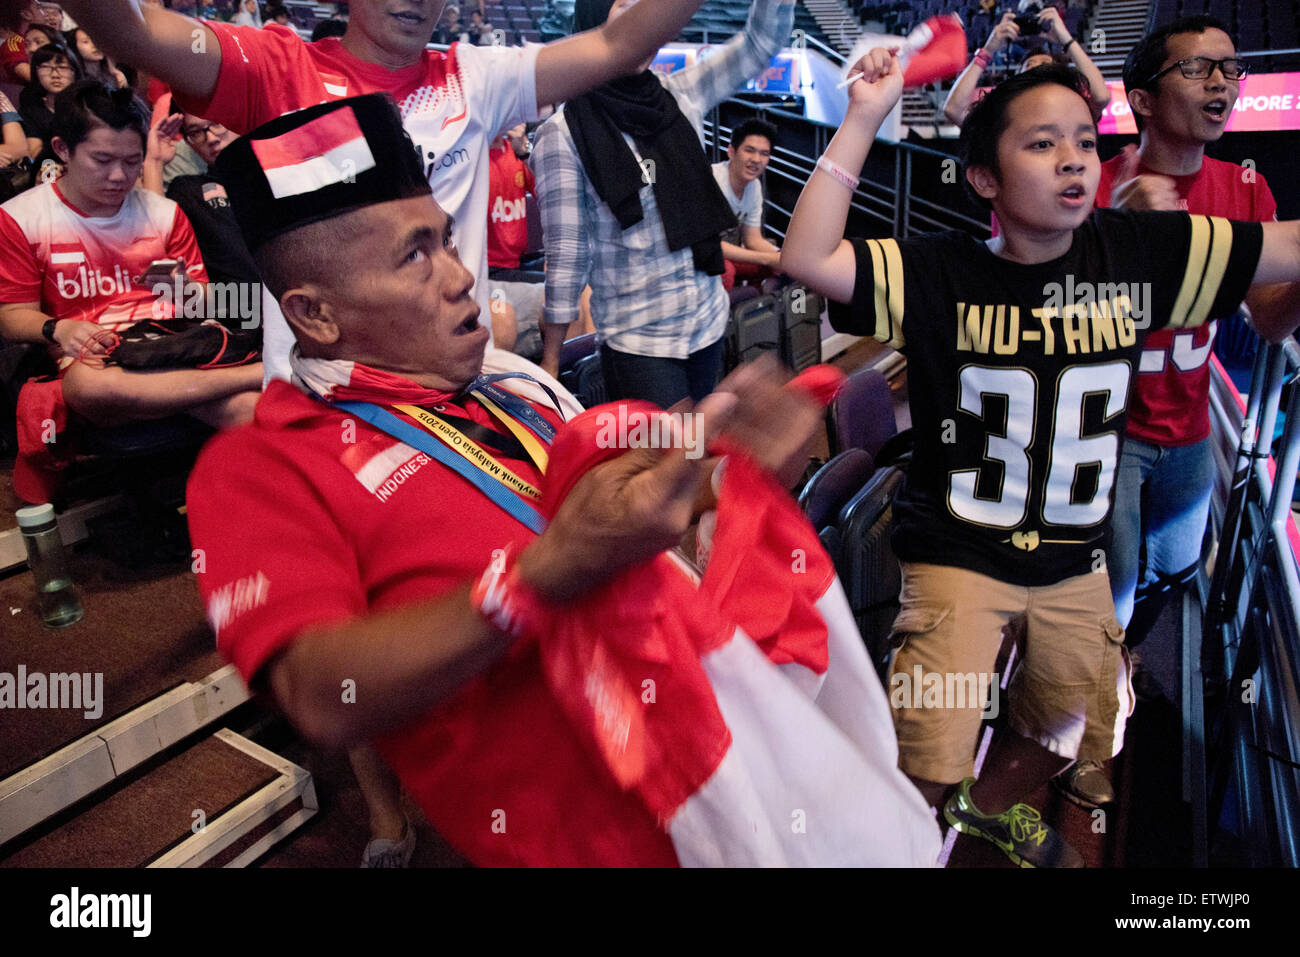 Indonesia vs. Malaysia Badminton doubles final game at the 28th SEA Games, Singapore, Indonesia supporters celebrate - Stock Image